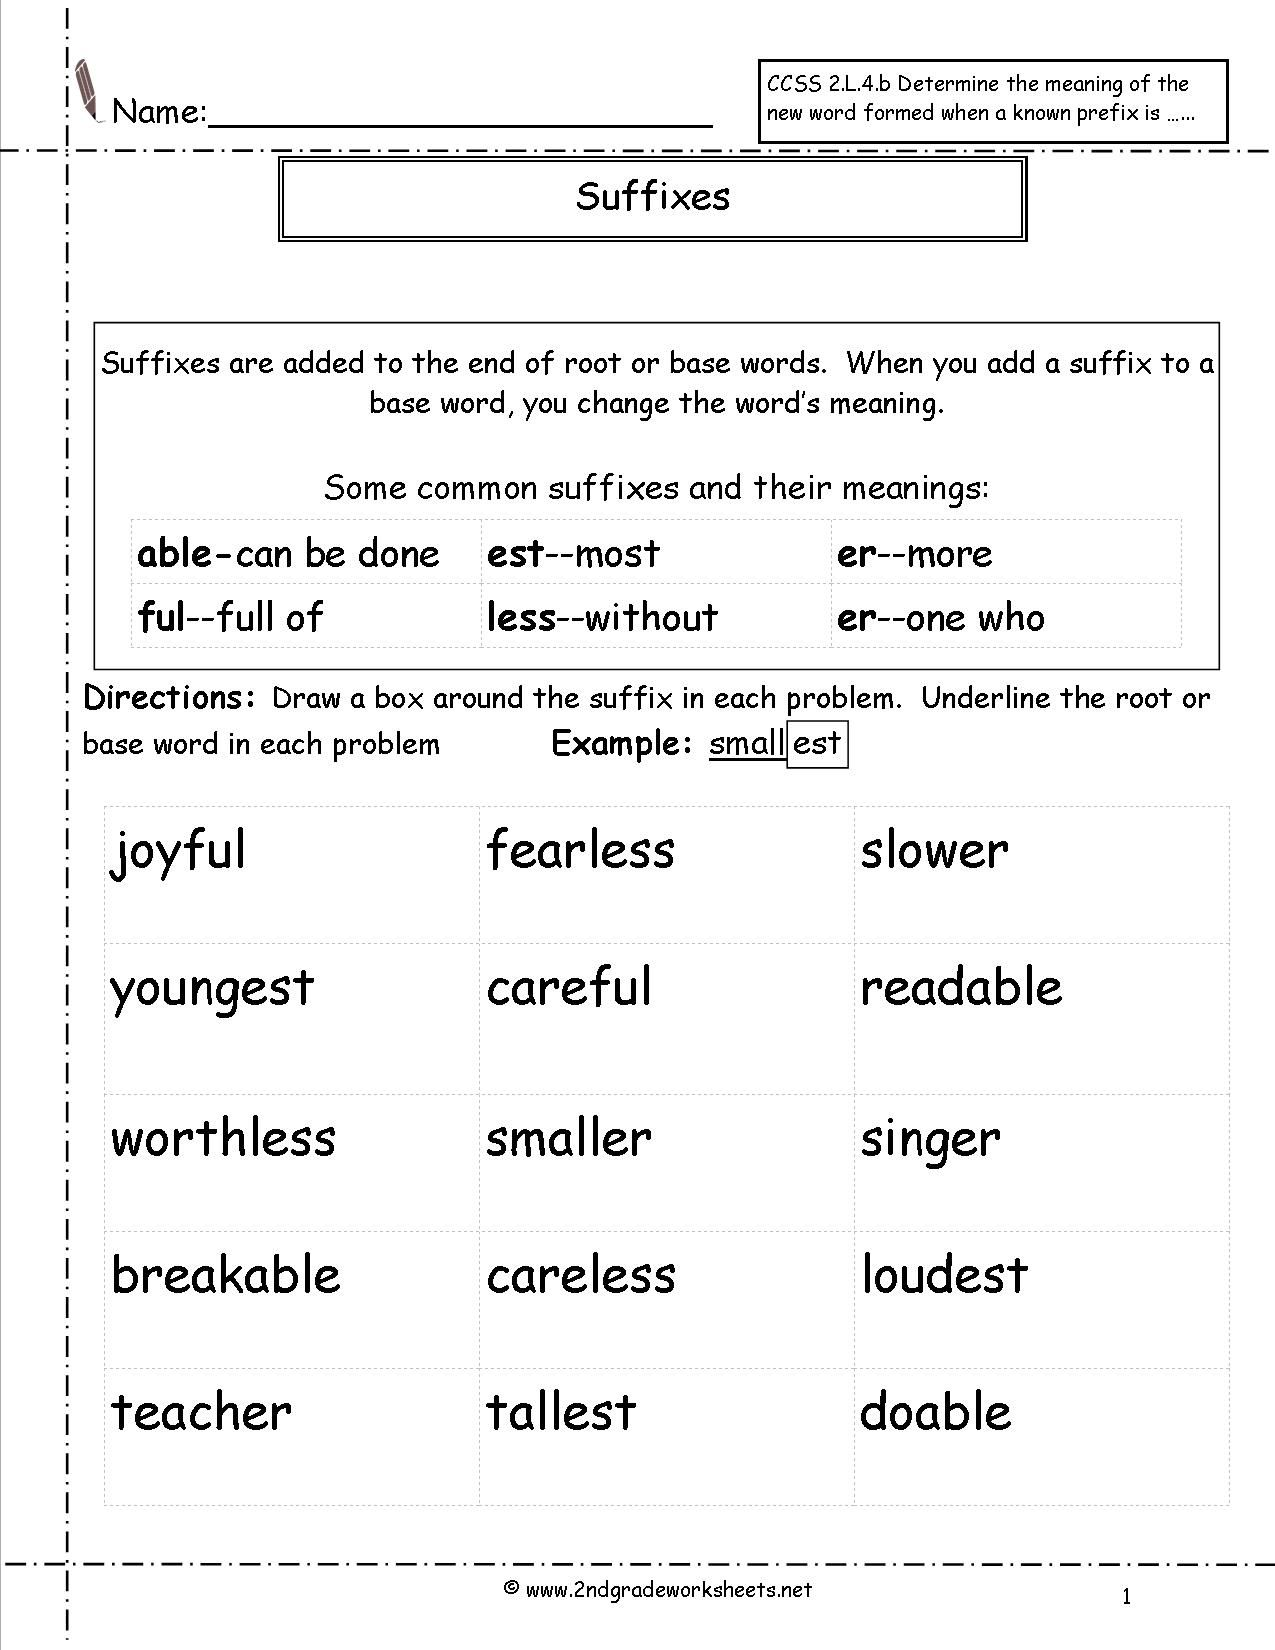 hight resolution of Pin by Laura Bradbury on Spring Unit in 2020   Suffixes worksheets